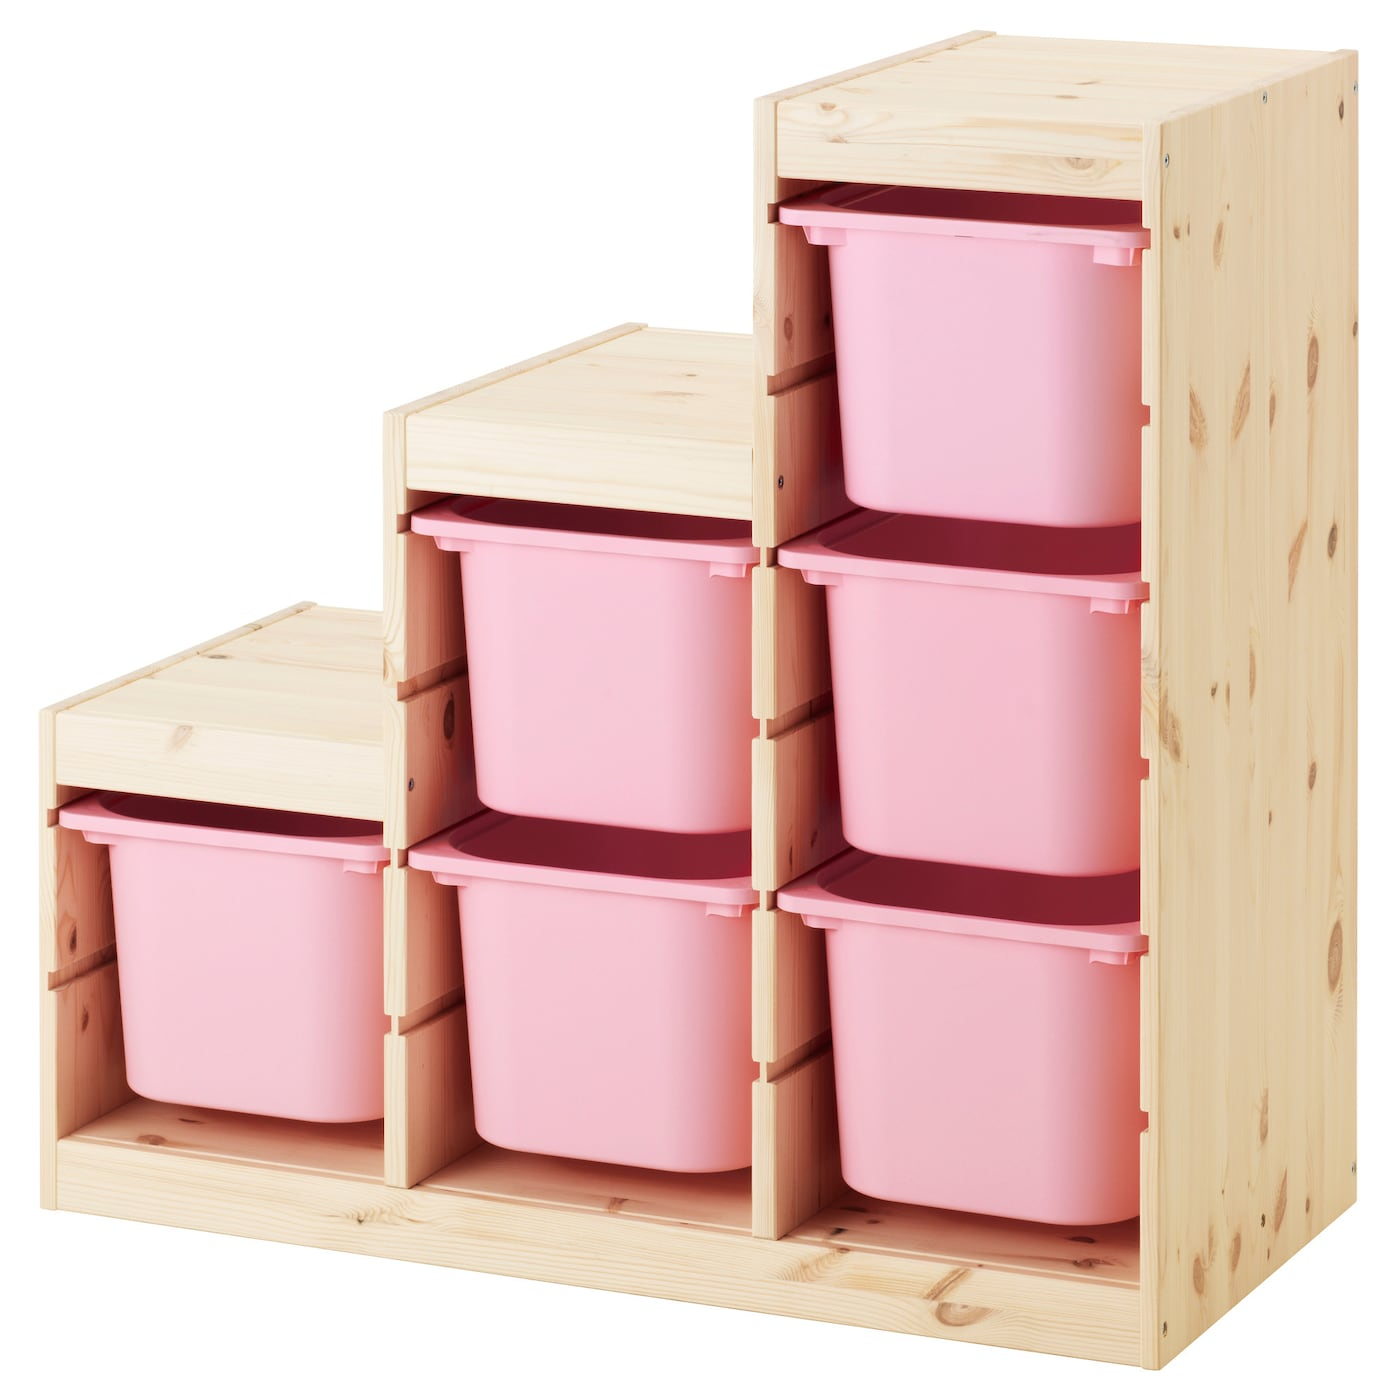 Trofast Storage Combination Light White Stained Pine Pink